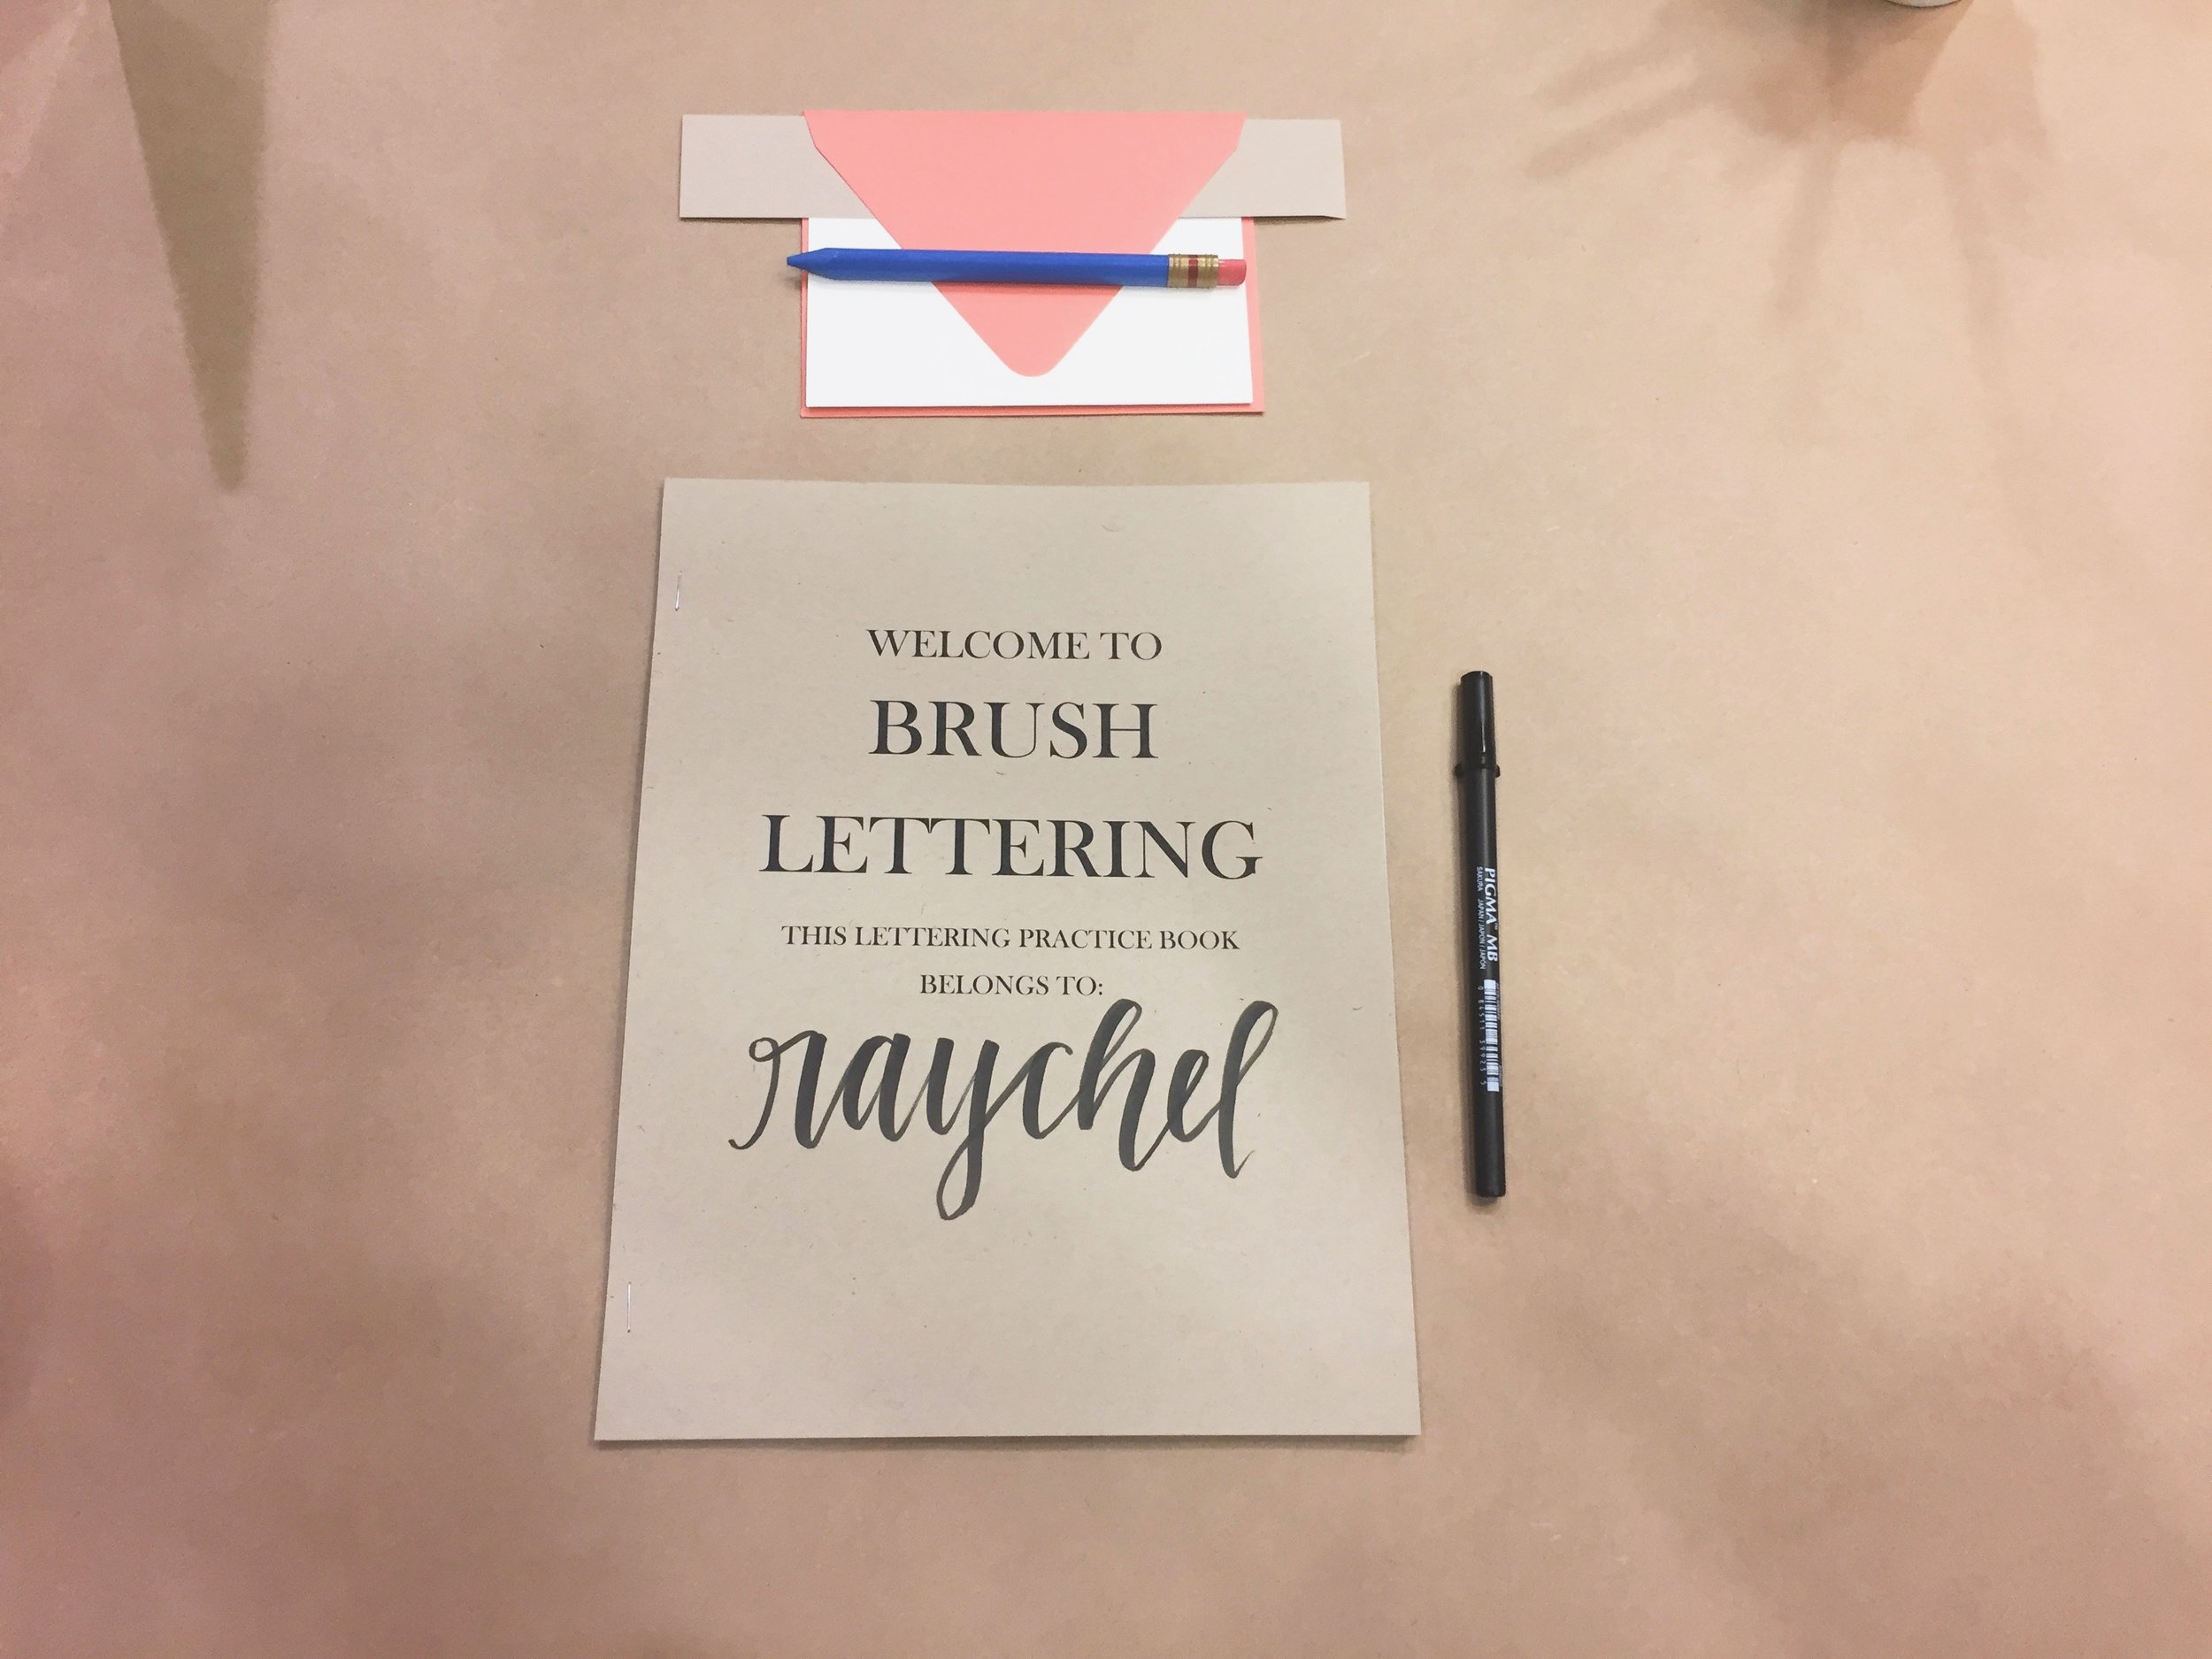 Who doesn't love seeing their name written all pretty?!